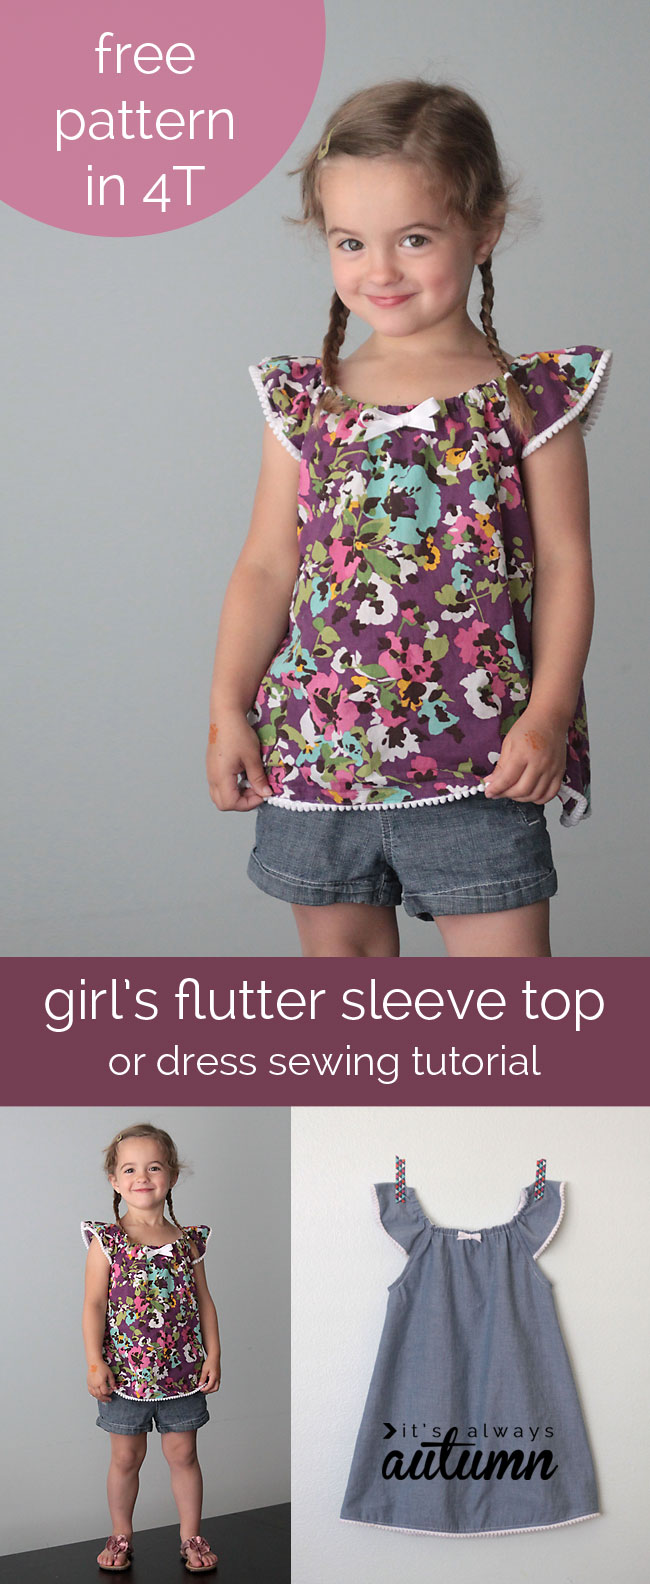 Flutter sleeve top pattern